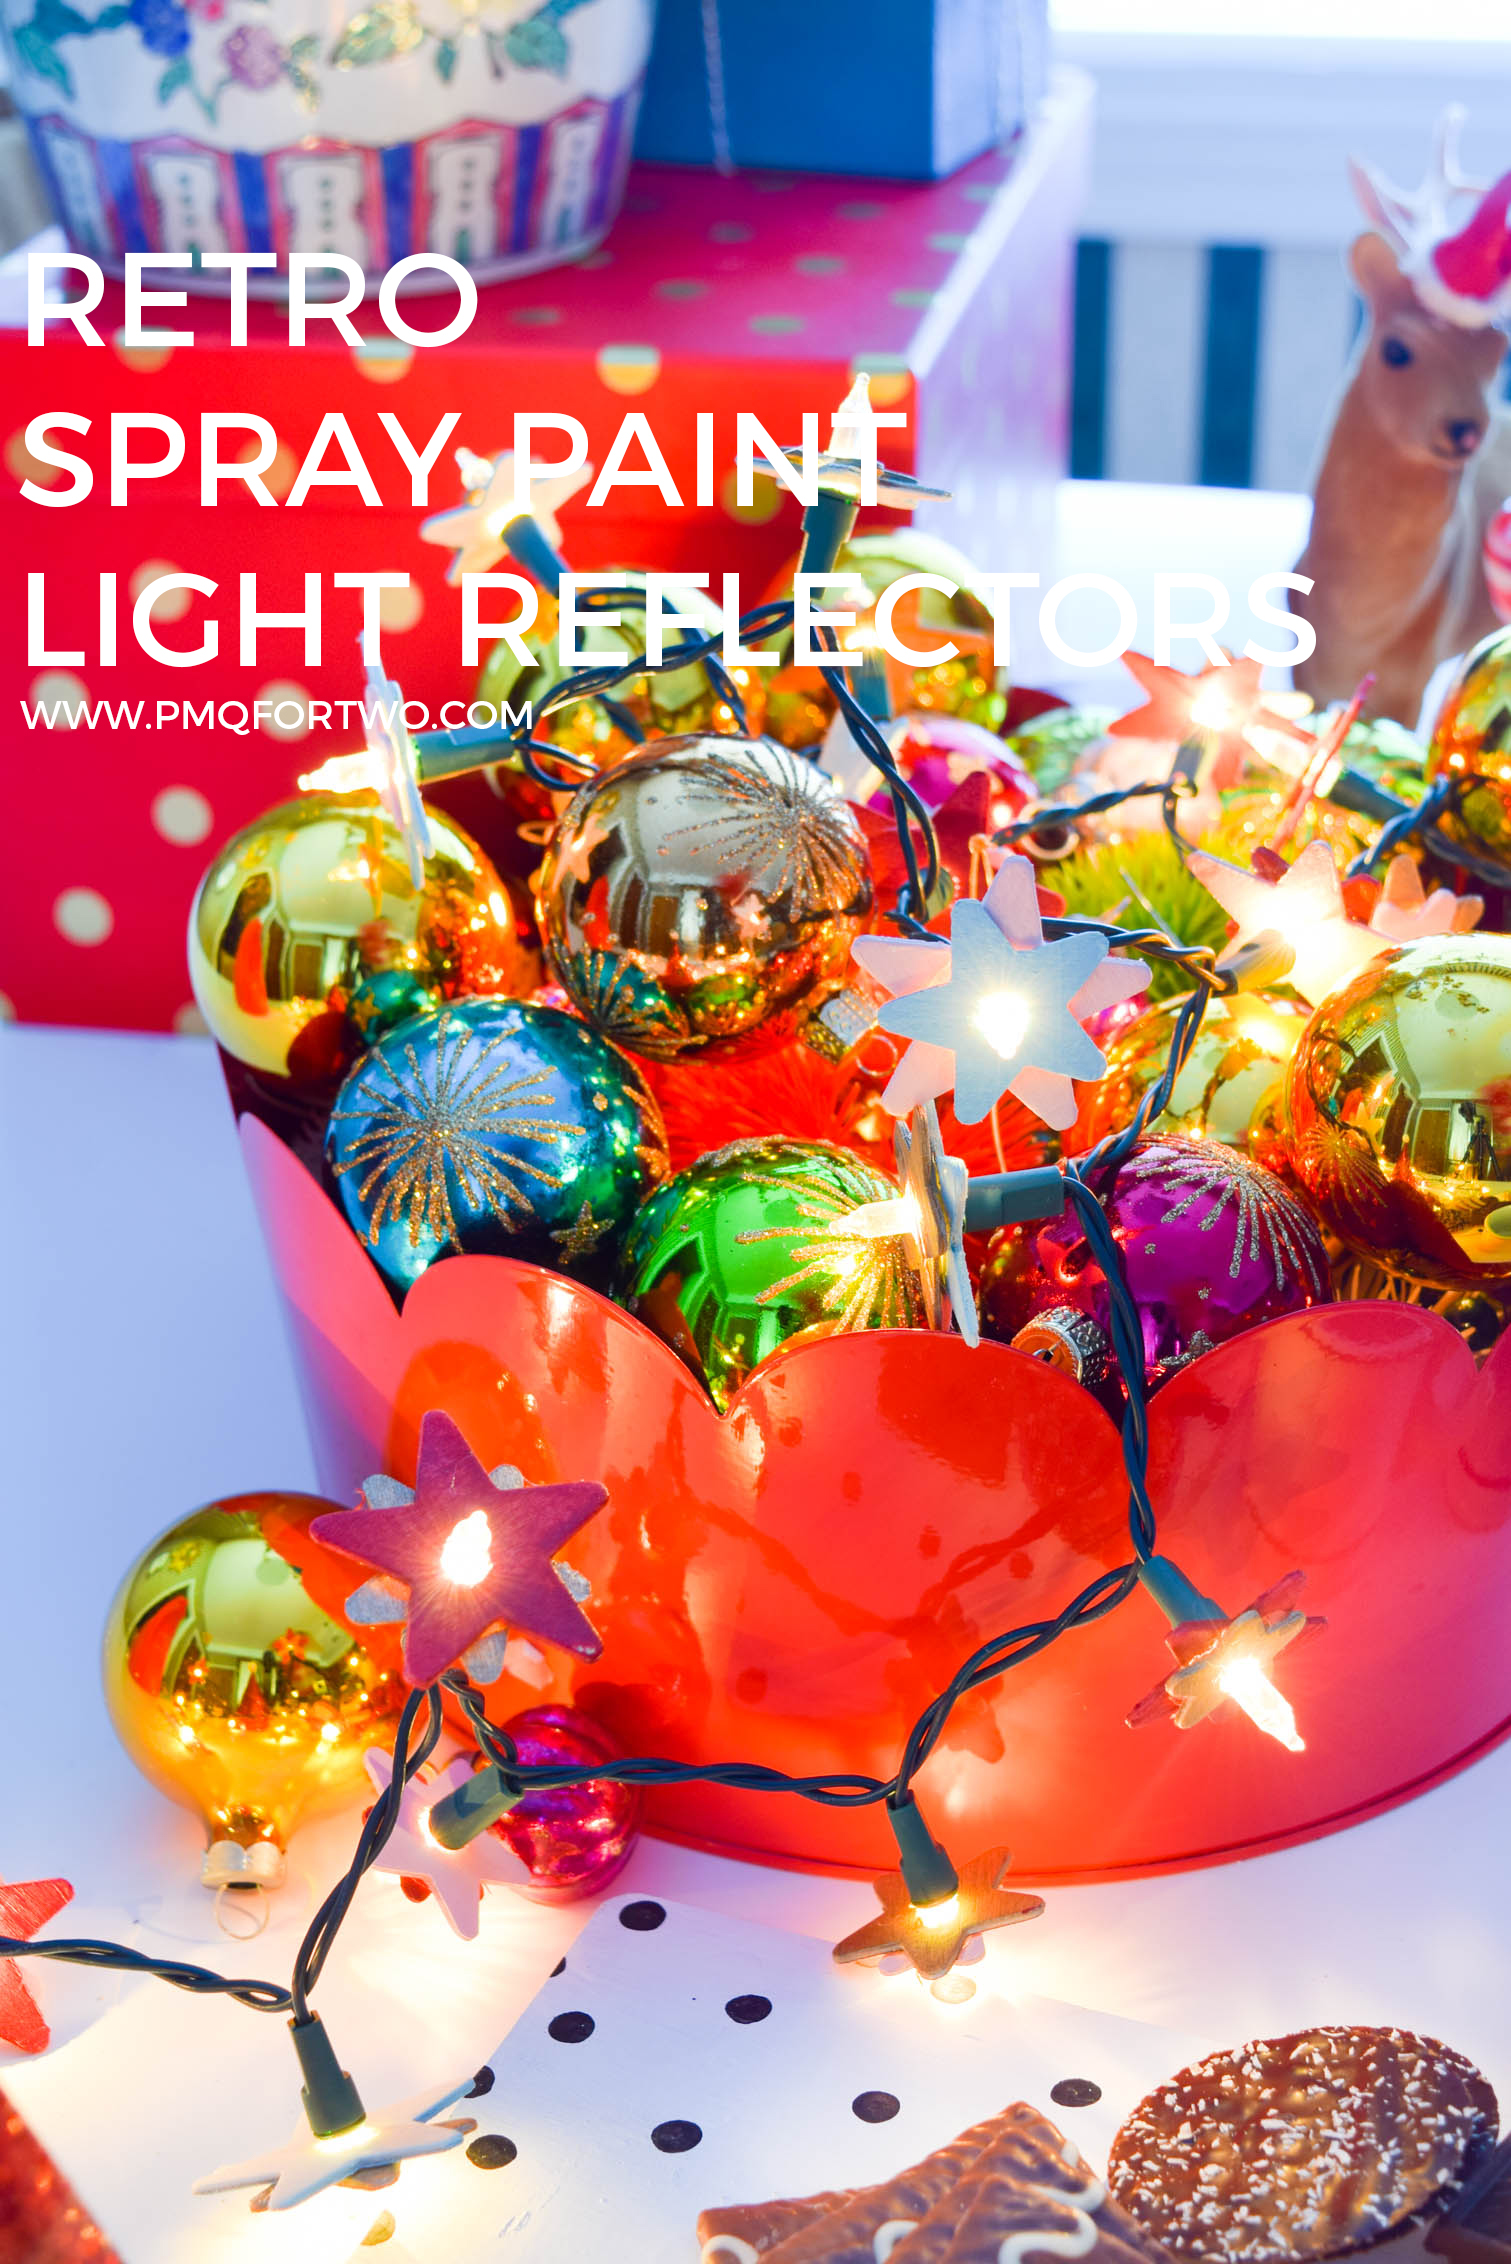 Can't find the real thing? DIY Retro Spray Paint light Reflectors are how you get the look for less in an afternoon. All you need is krylon's line of spray paints, and a string of lights.